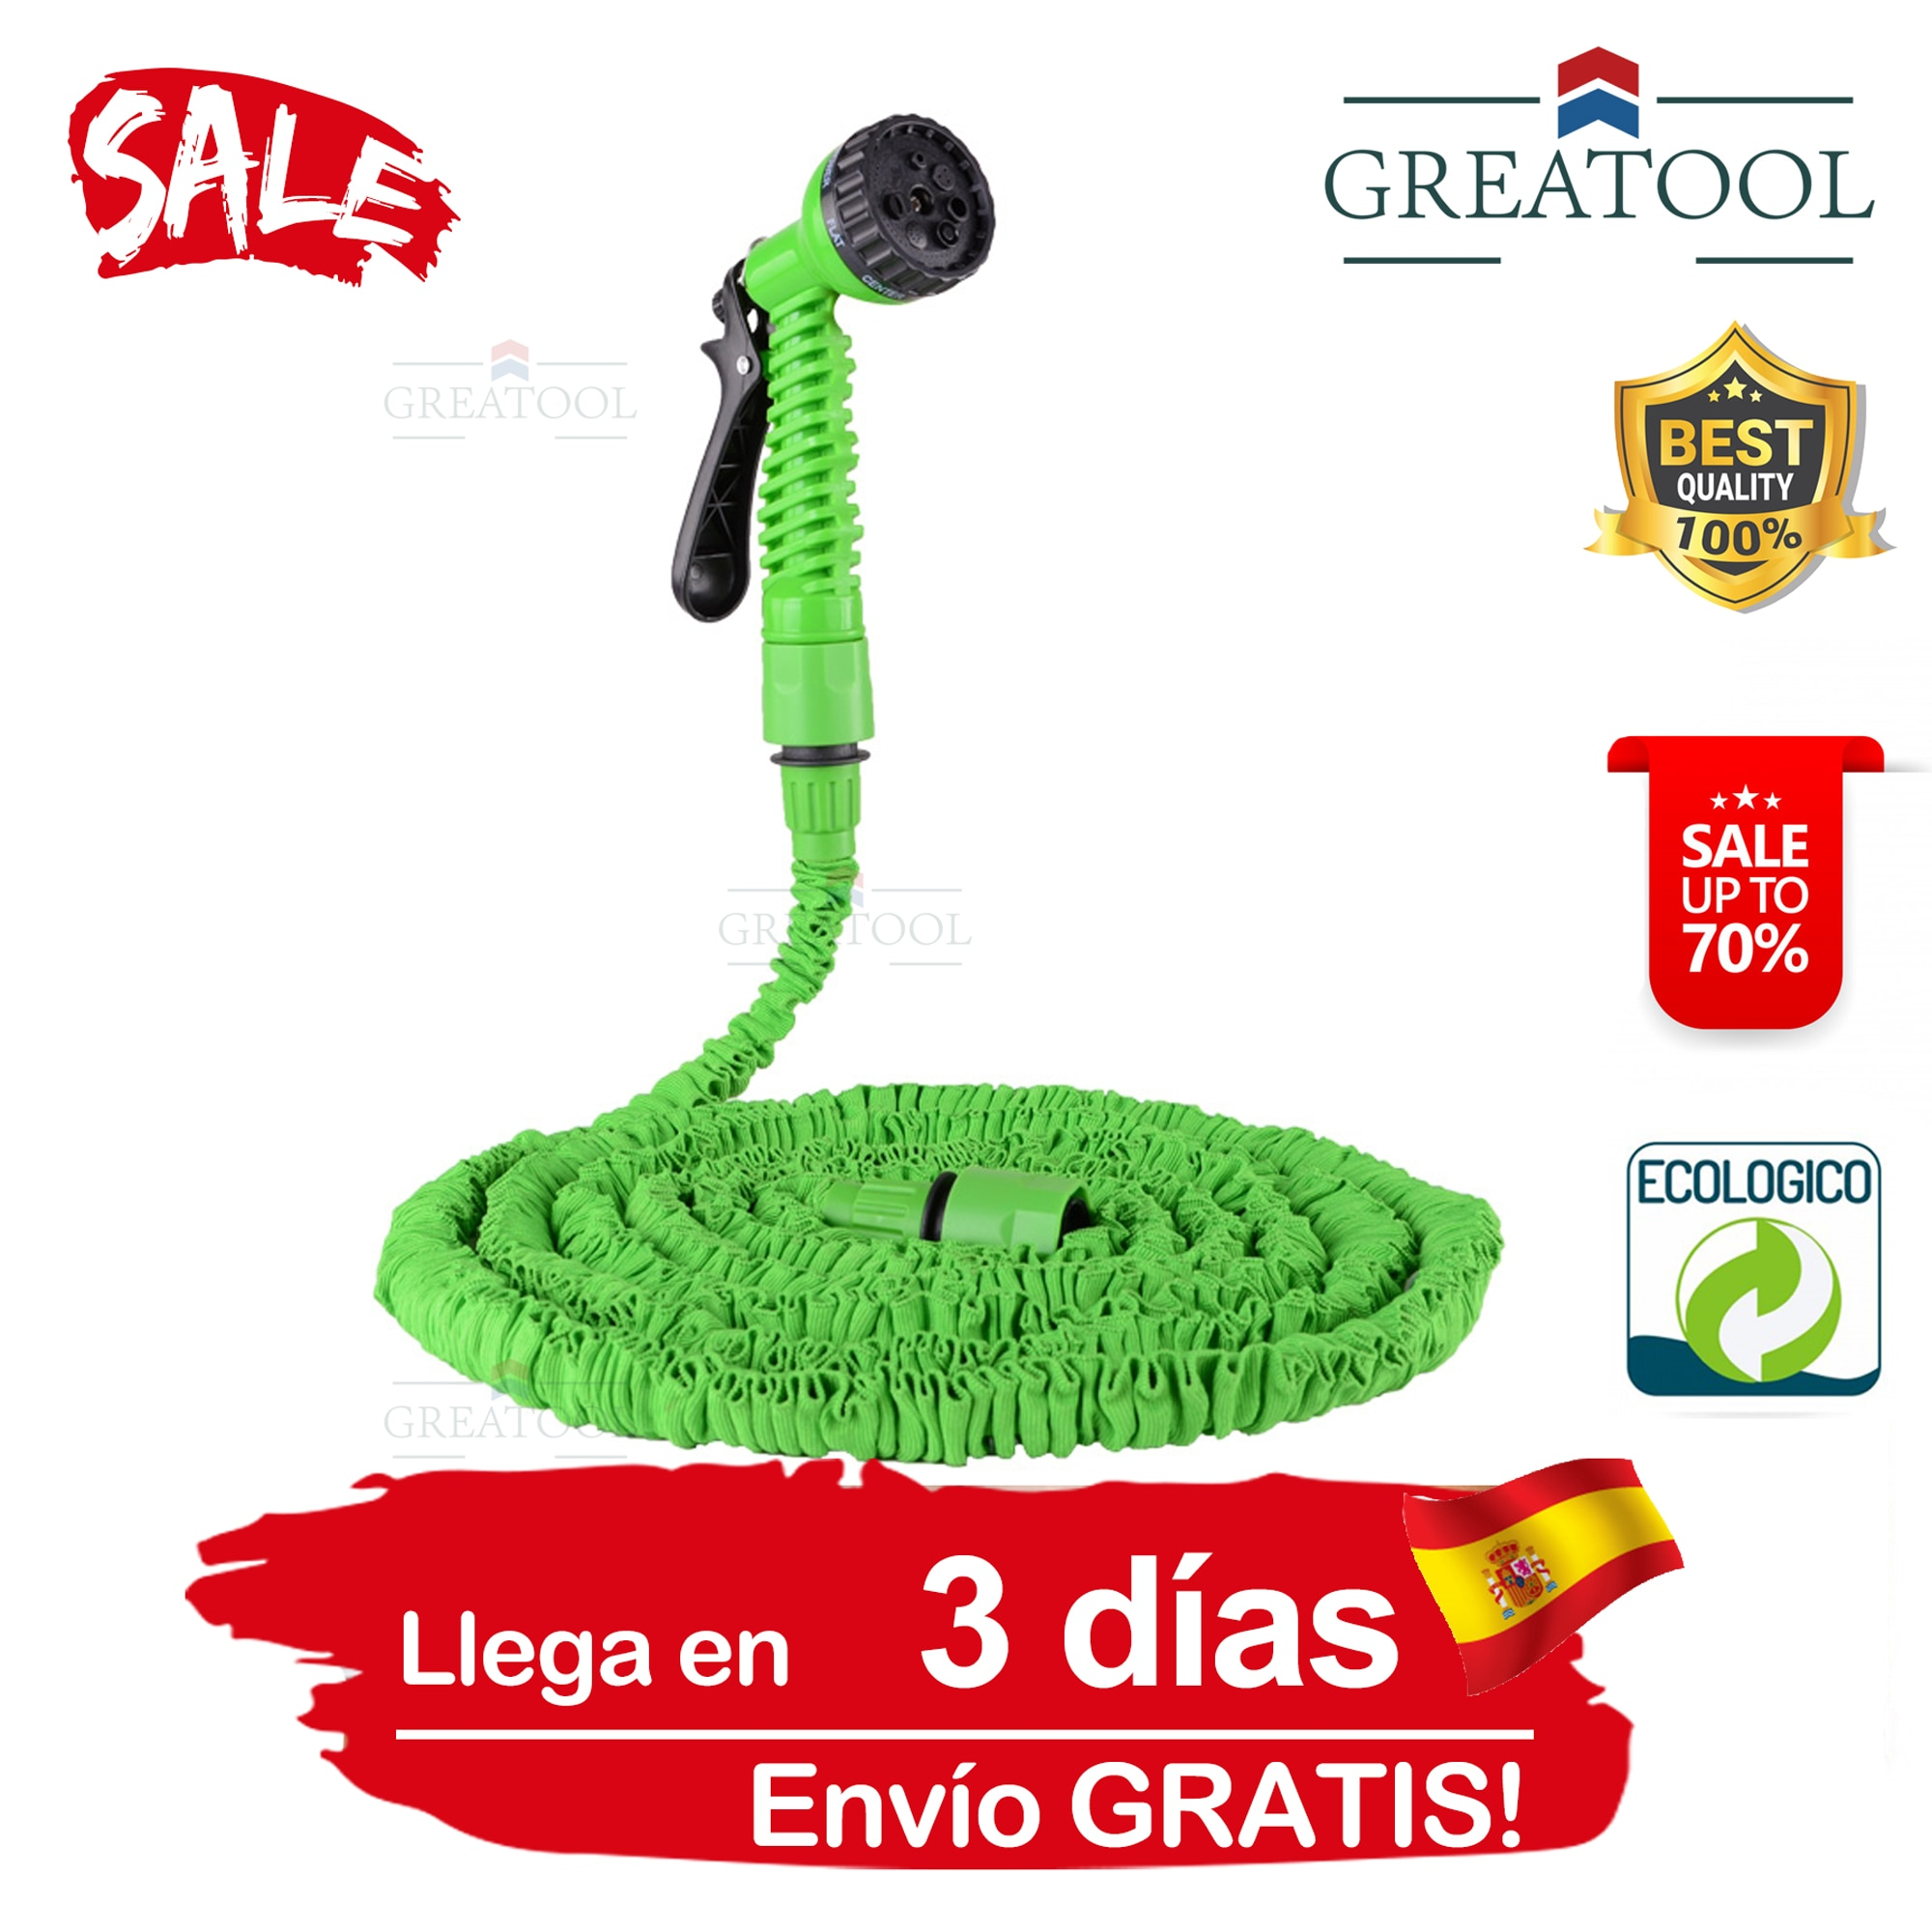 aliexpress.com - Retractable garden Mangura, expandable flexible reels, irrigation connector, pots and pots with stand, for car wash